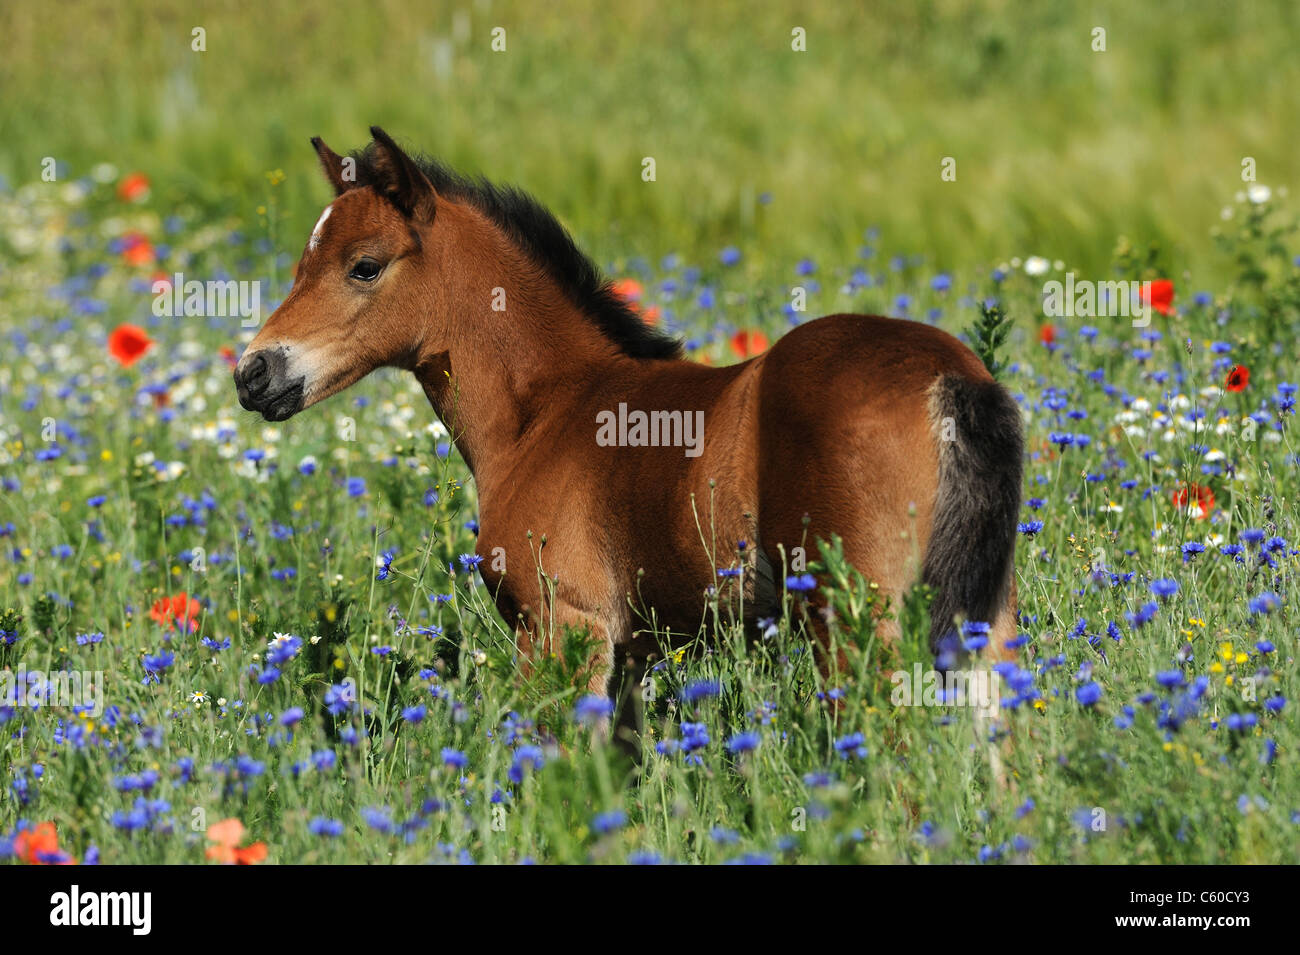 German Riding Pony (Equus ferus caballus). Foal standing among flowering poppies and cornflowers. - Stock Image